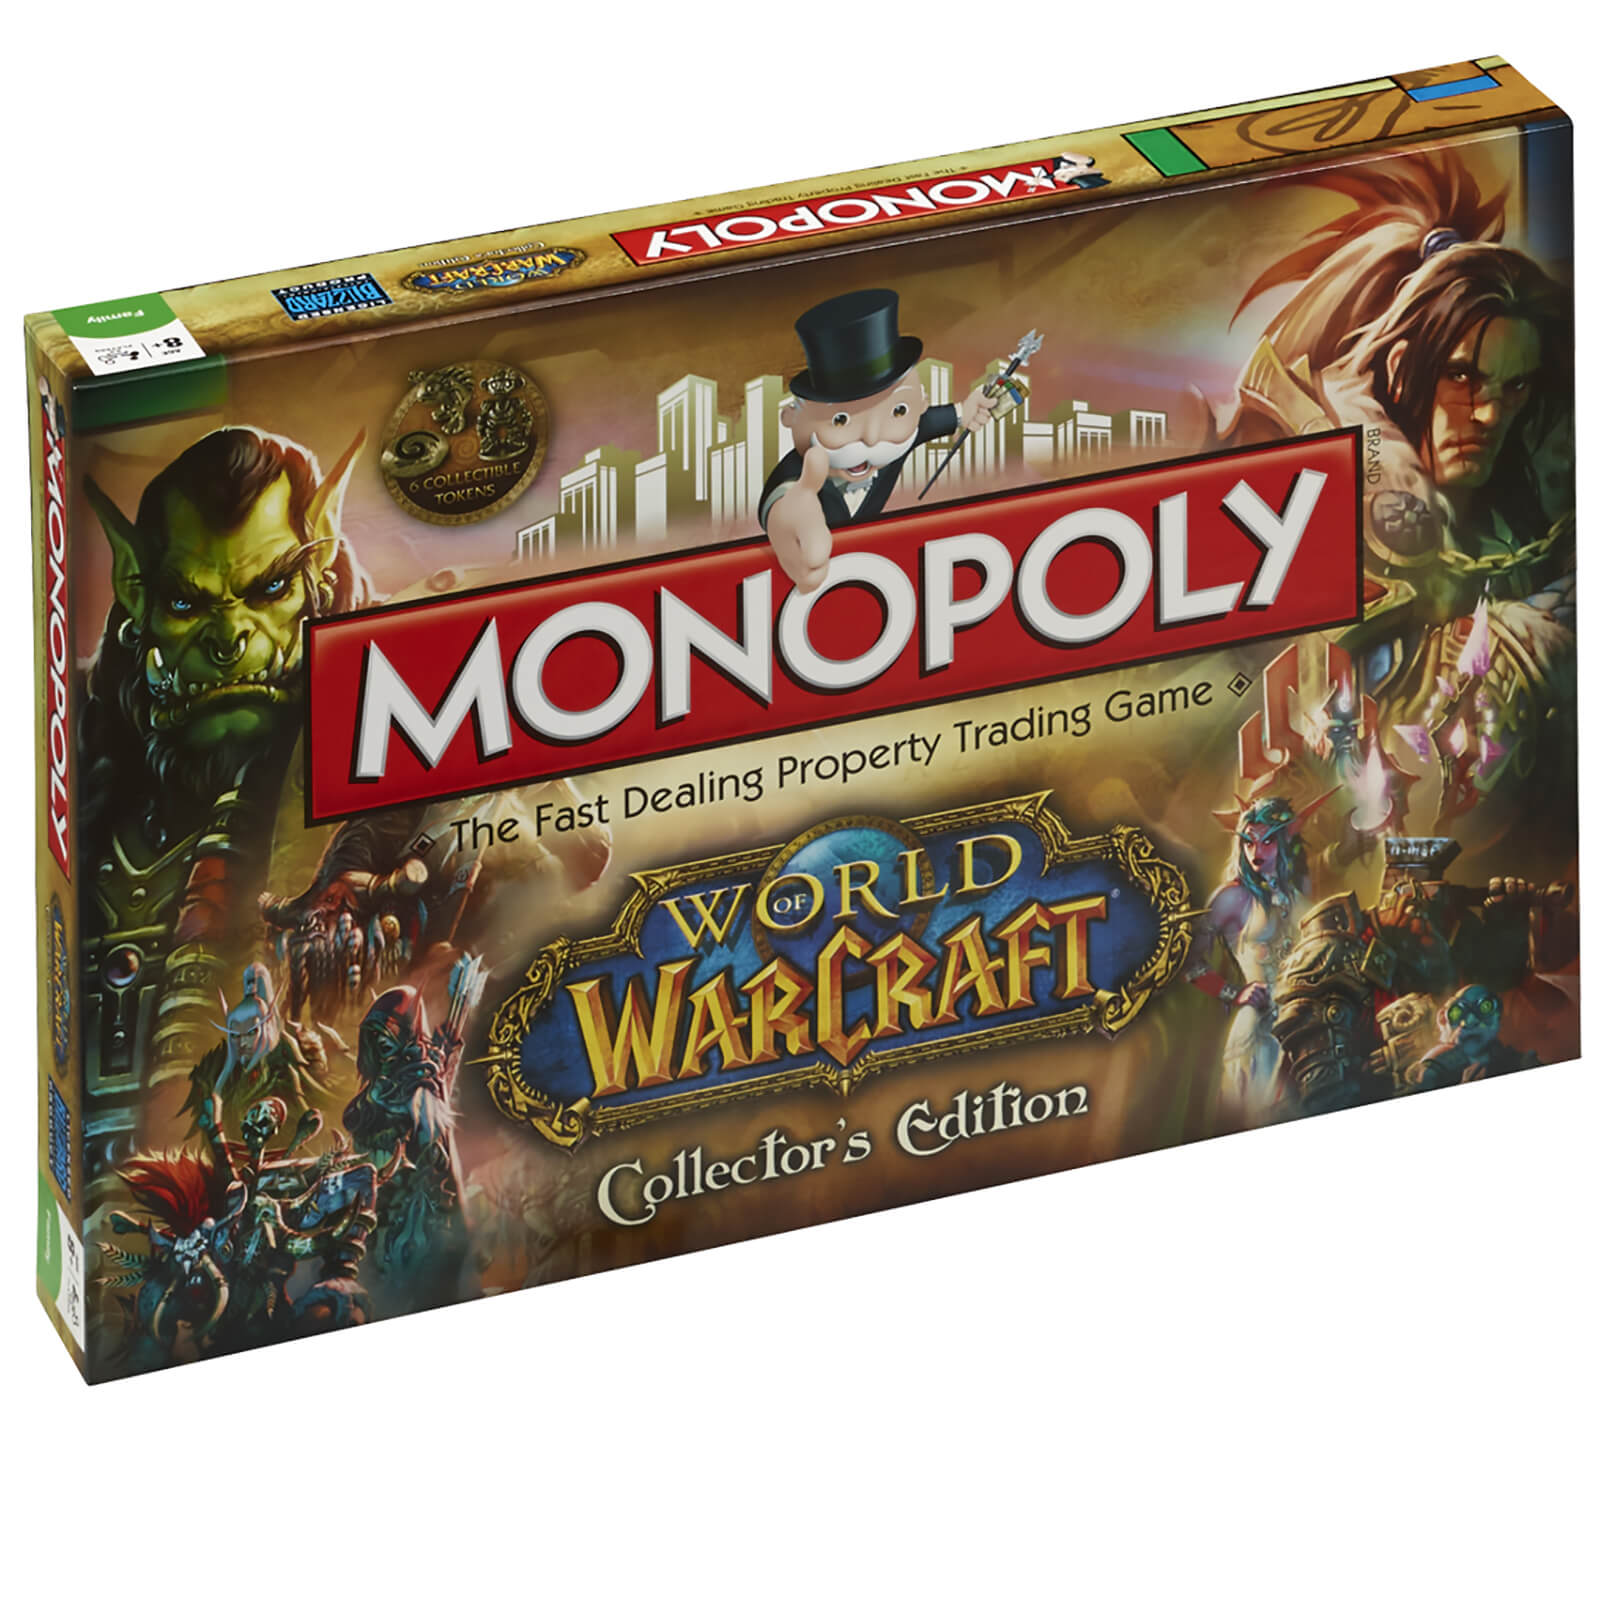 Image of Monopoly - World of Warcraft Edition